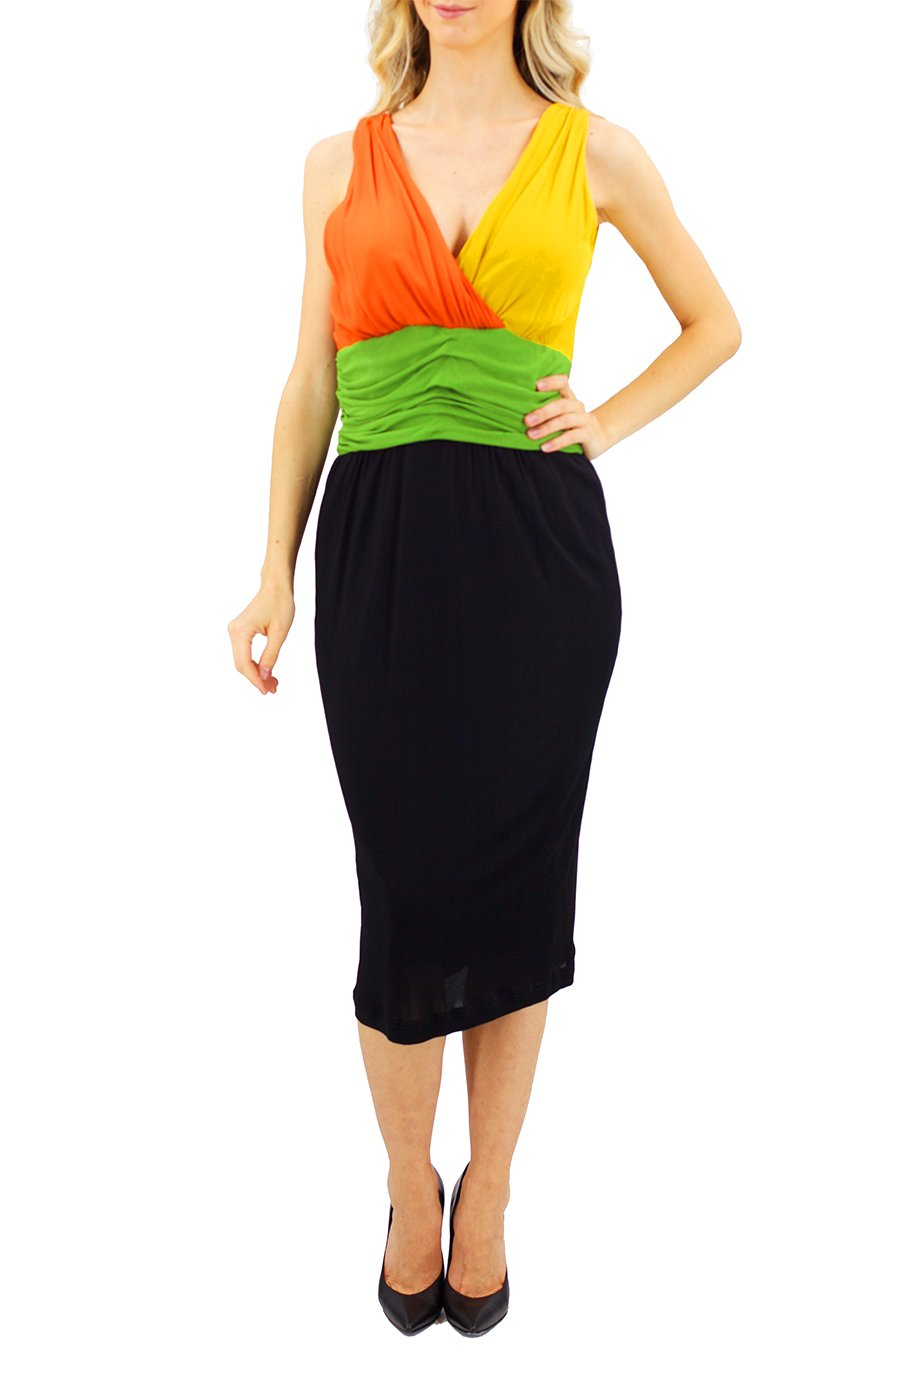 Louis Feraud Vintage sleeveless color block dress